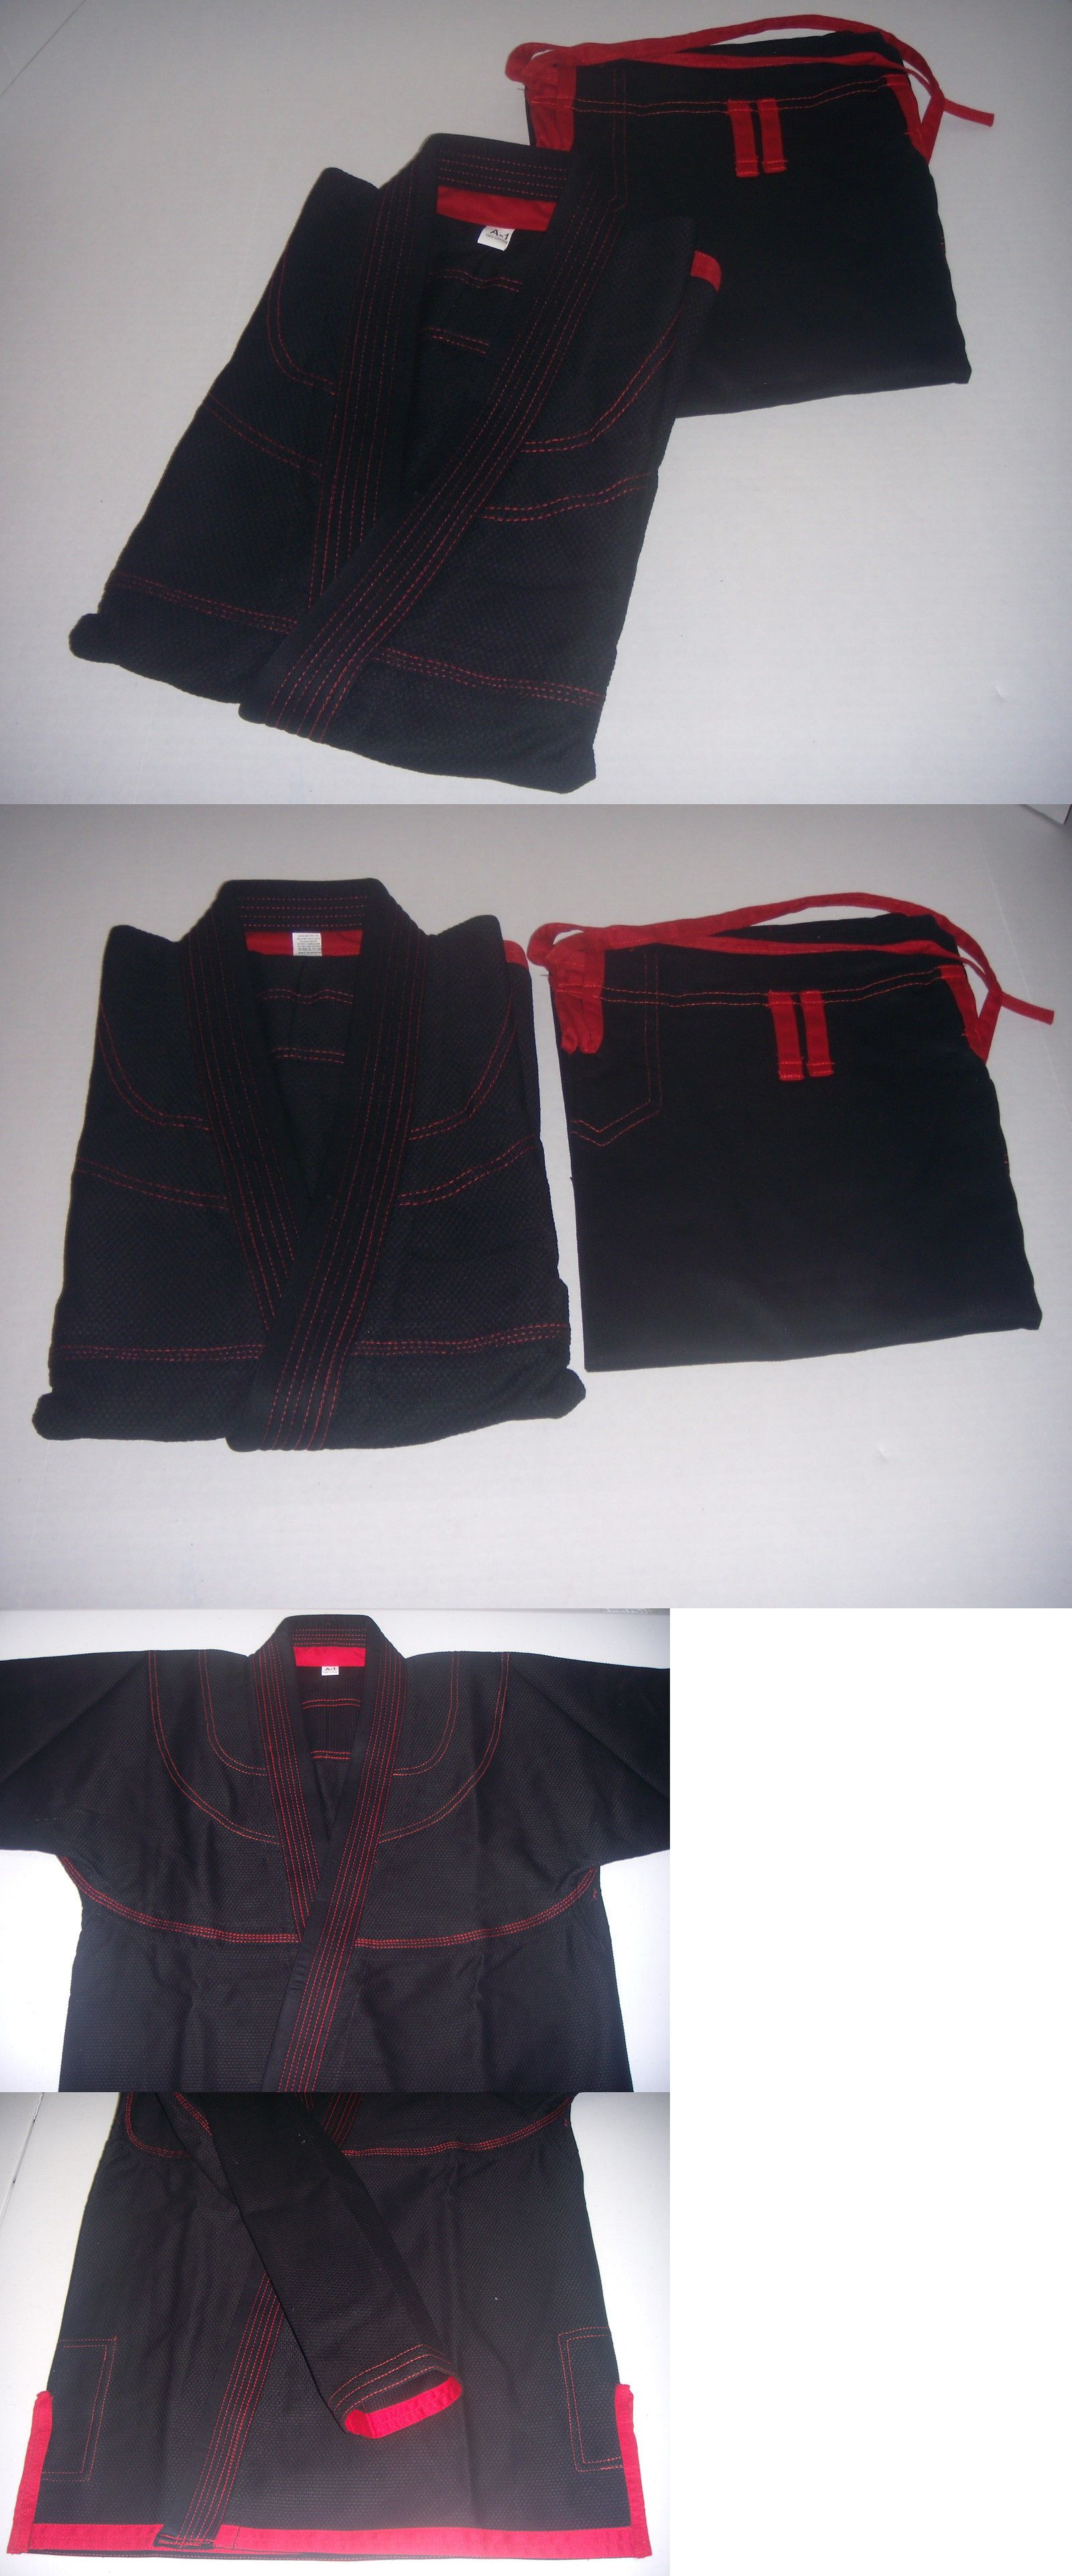 Uniforms and Gis 179774: Brazilian Jiu Jitsu Gi For Mens - Black Red Pearl Weave 100% Cotton Preshrunk -> BUY IT NOW ONLY: $64.95 on eBay!